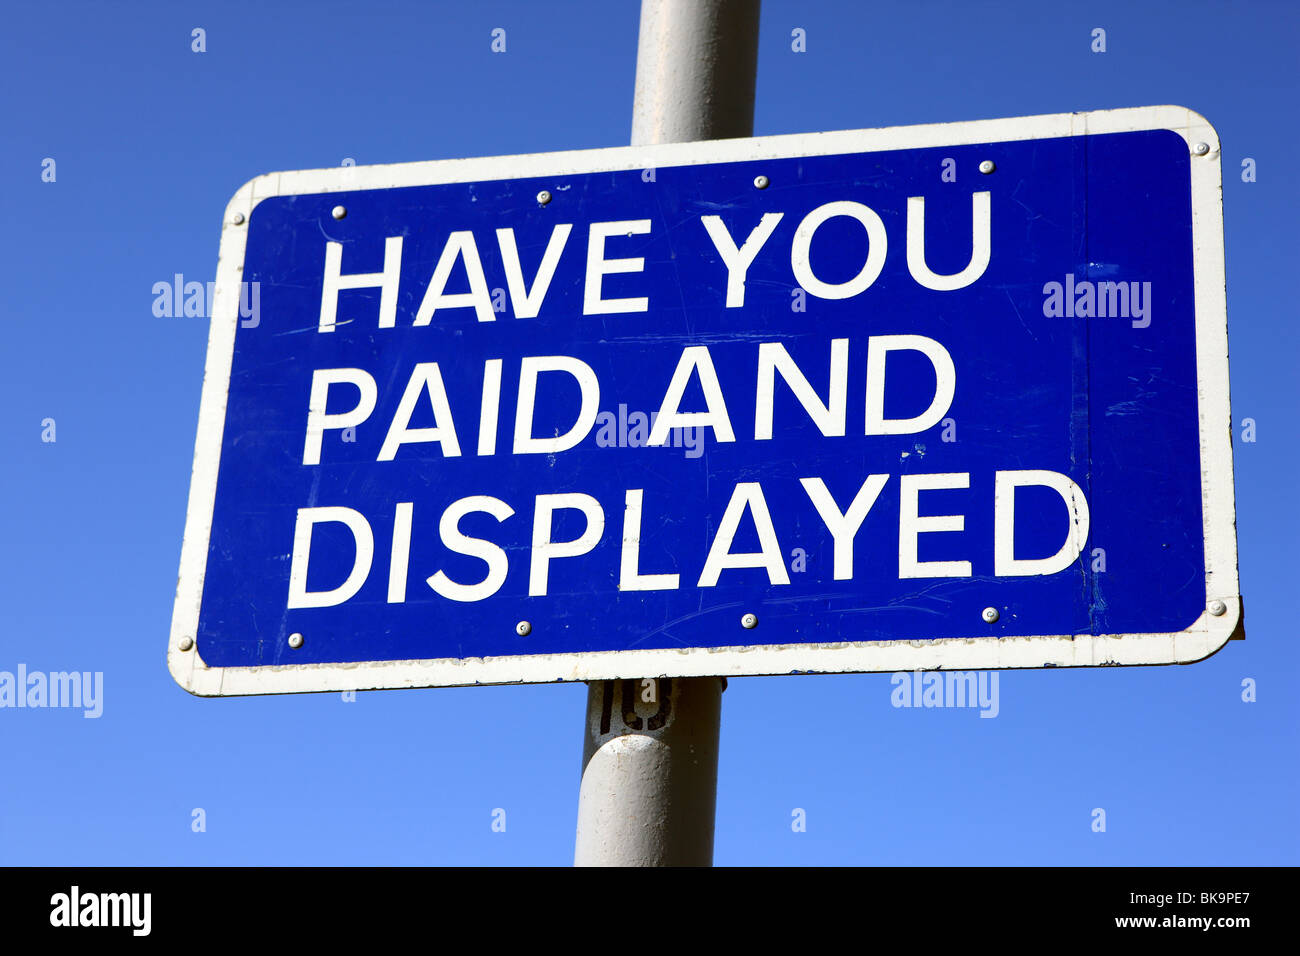 Sign at a car park asking 'Have you paid and Displayed' referring to the purchase and displaying of a car - Stock Image